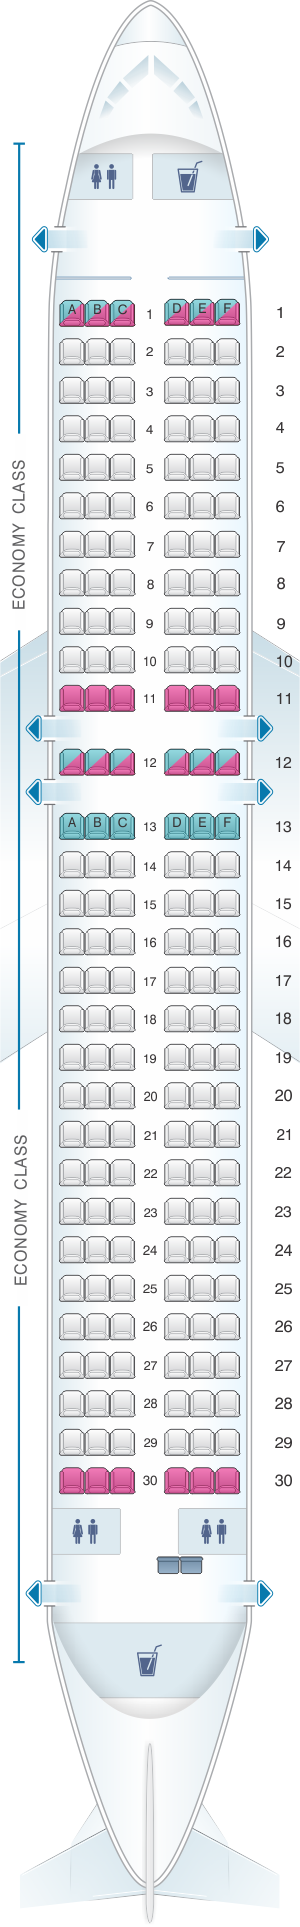 Seat map for IndiGo Airbus A320